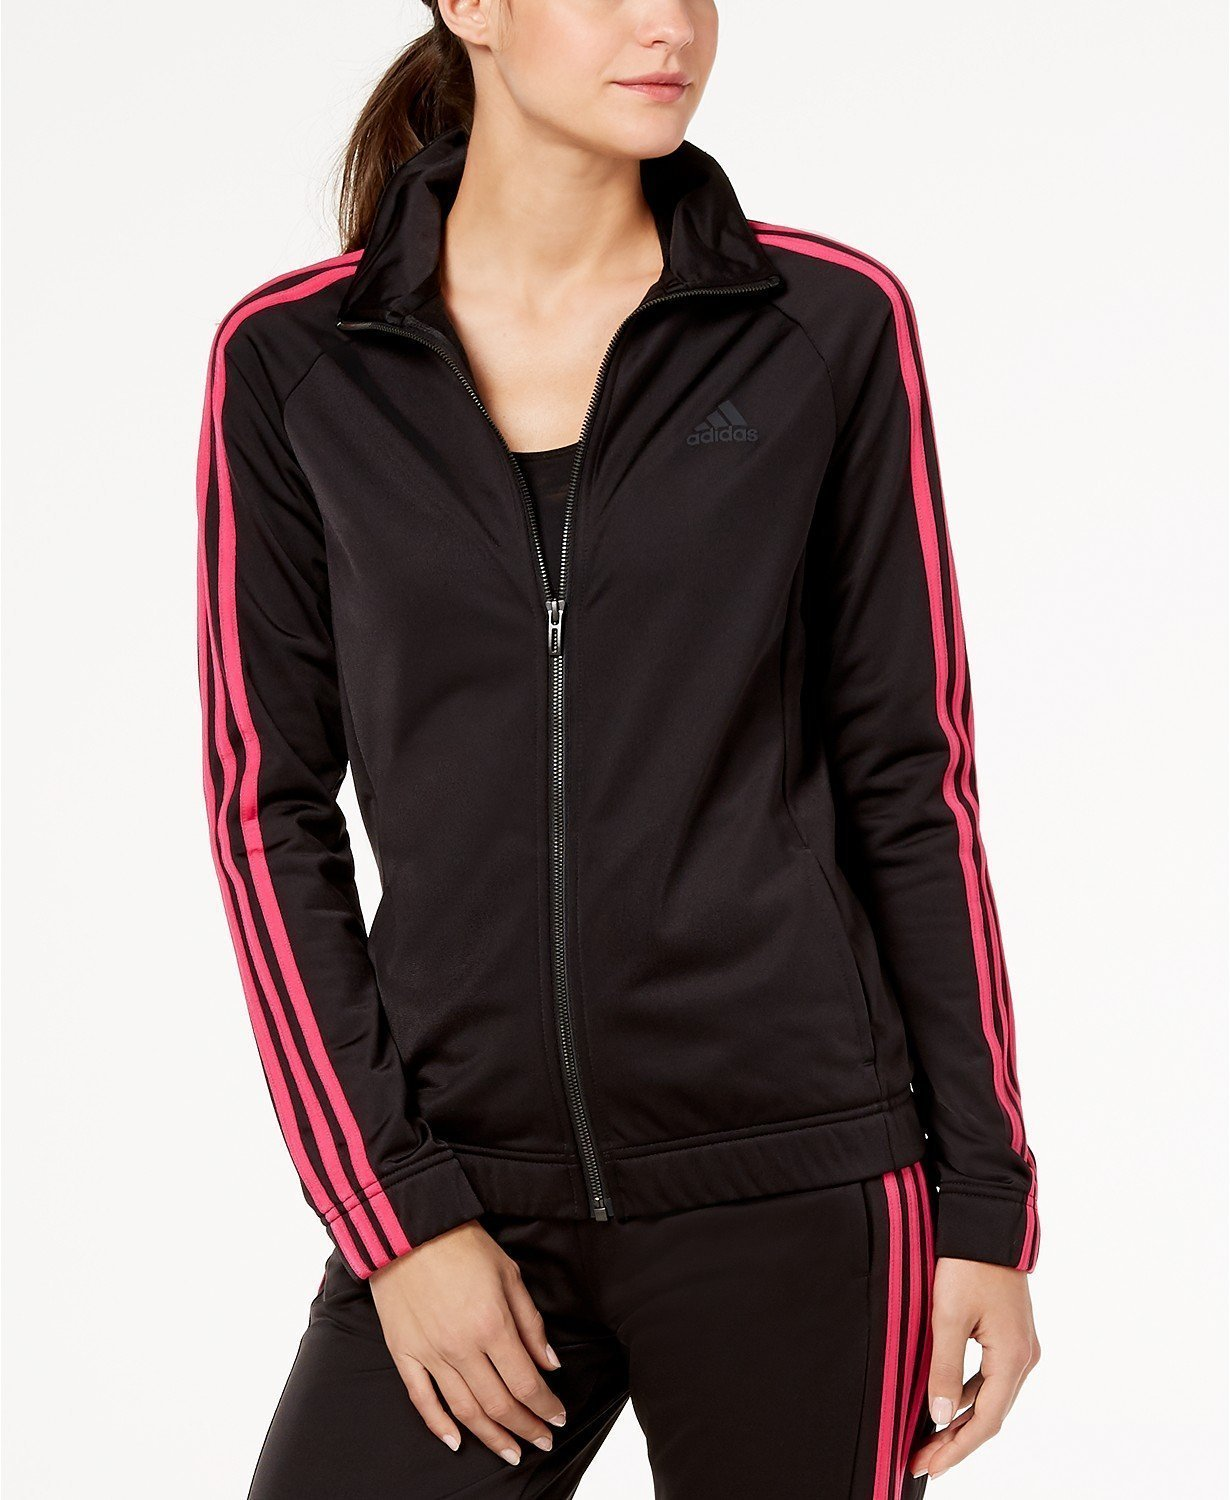 survetement femme adidas ensemble